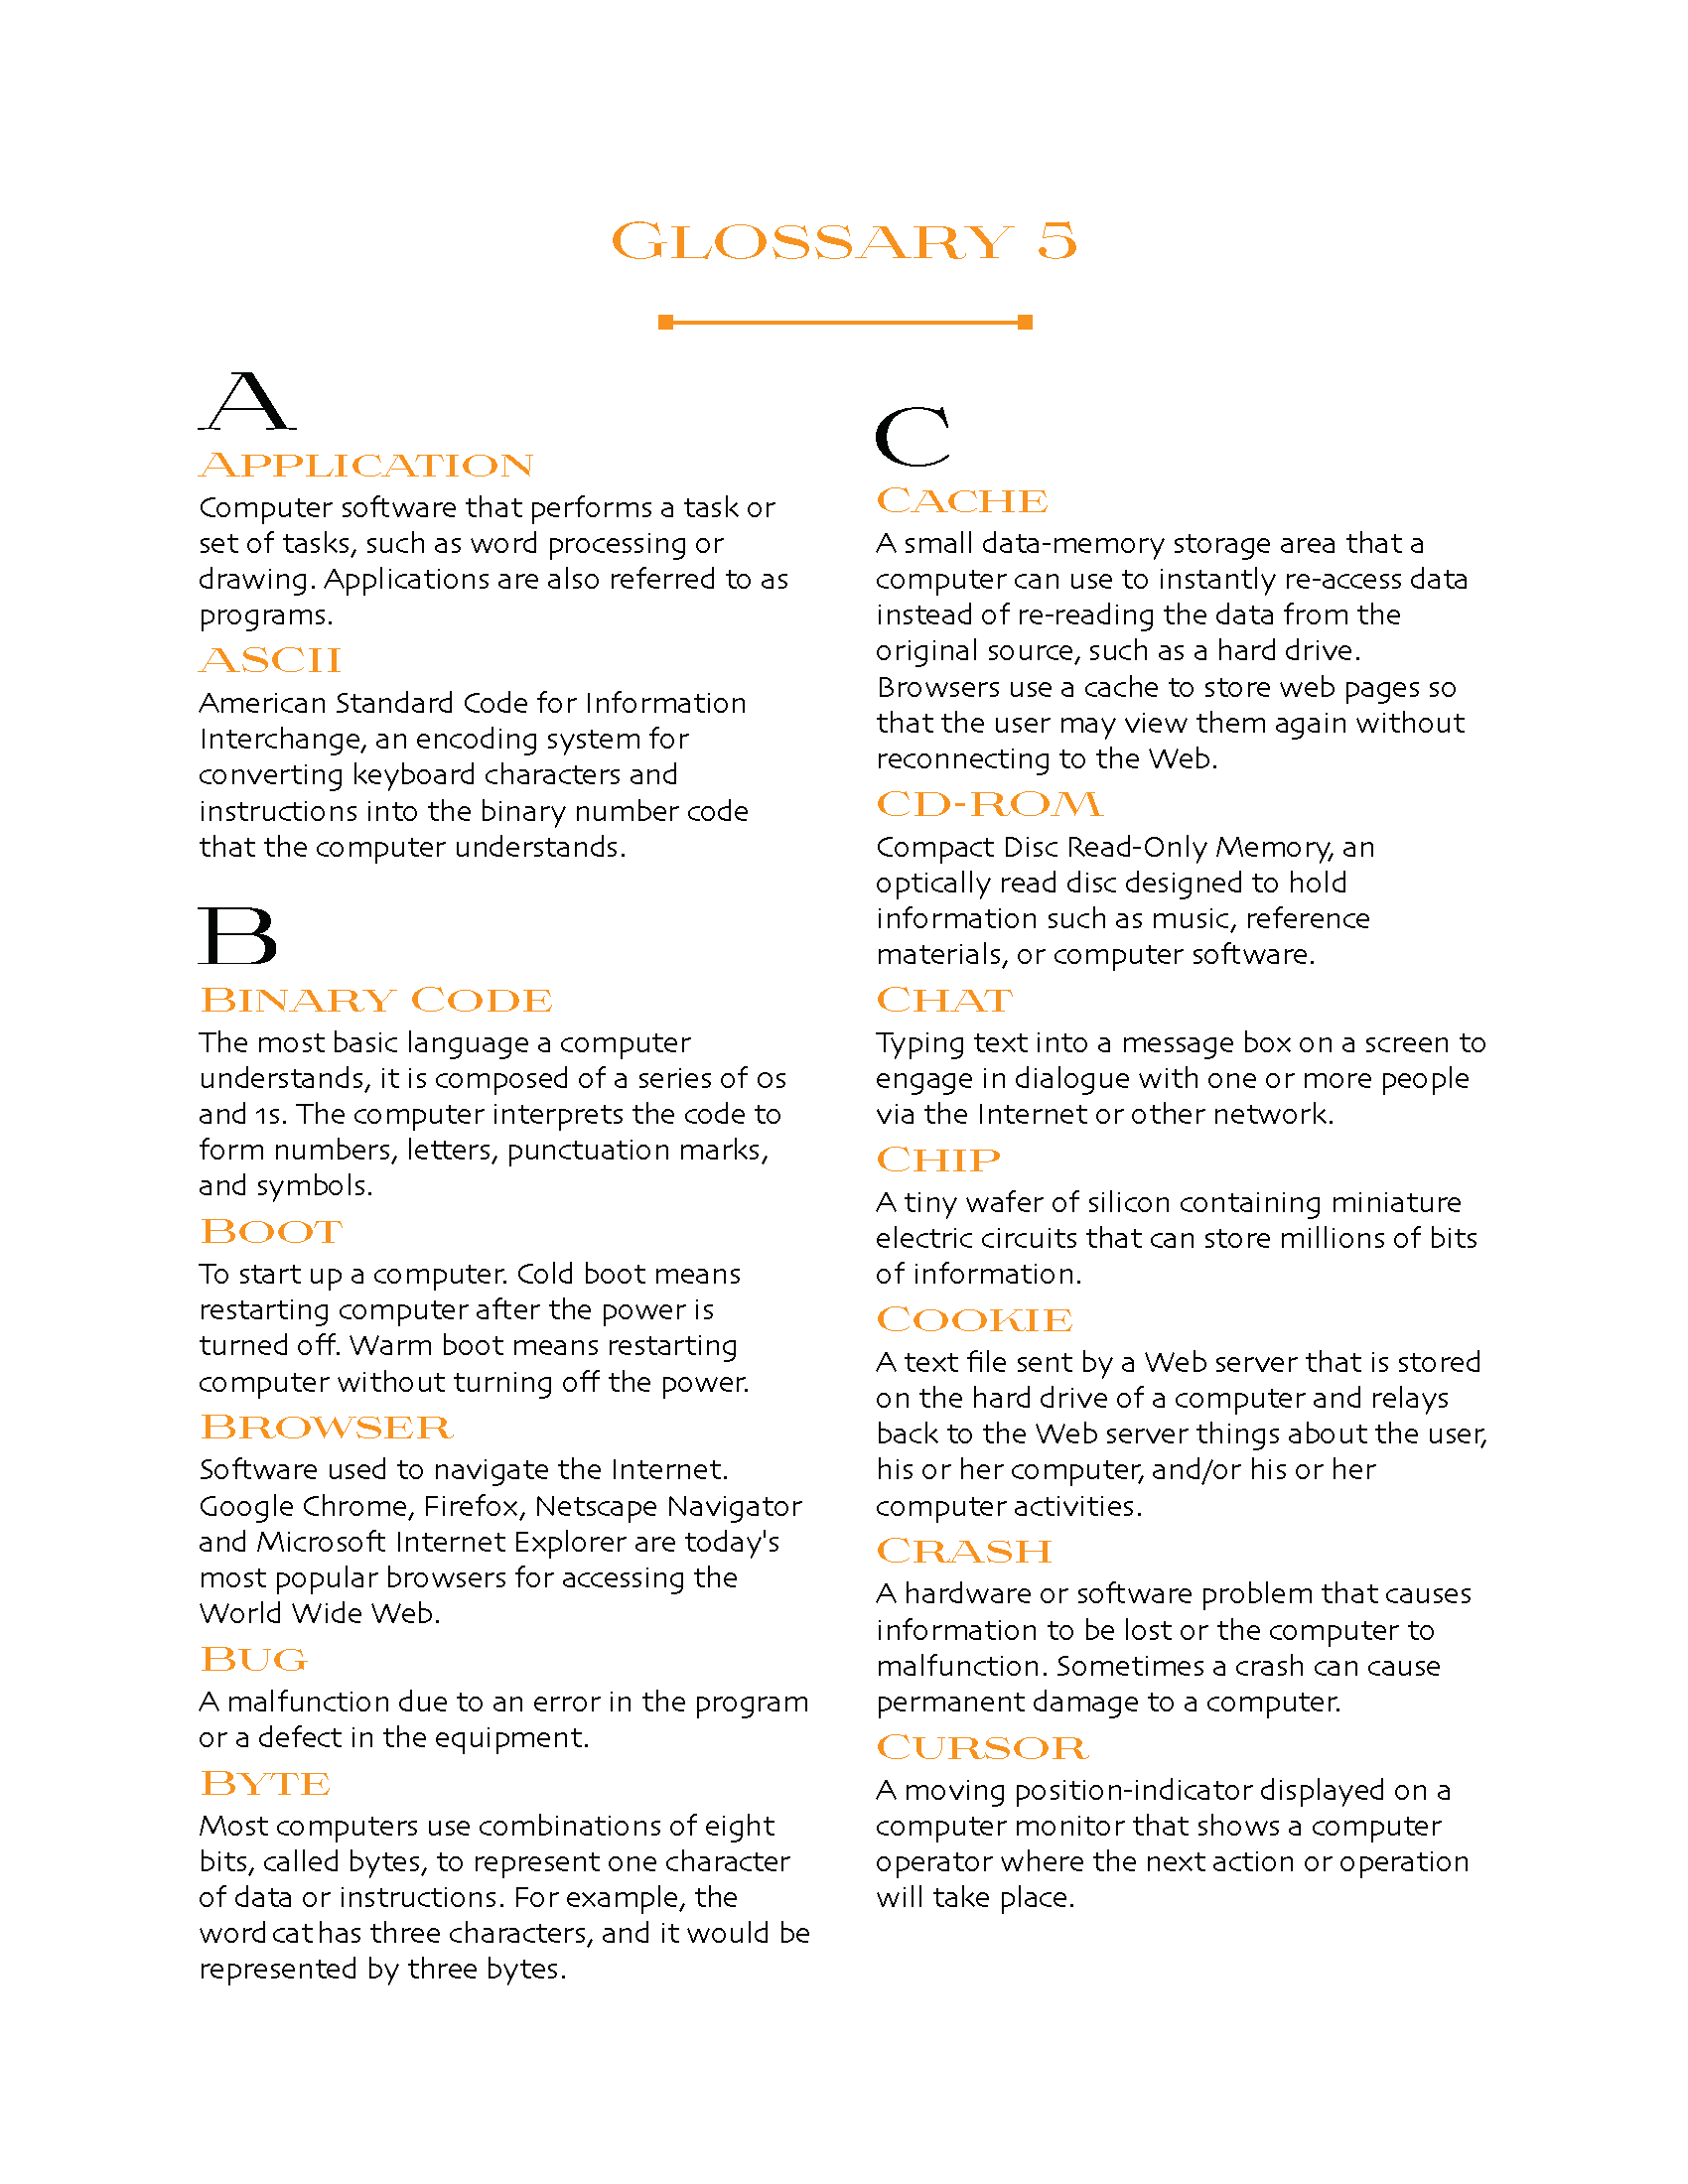 Glossary Template Page 05